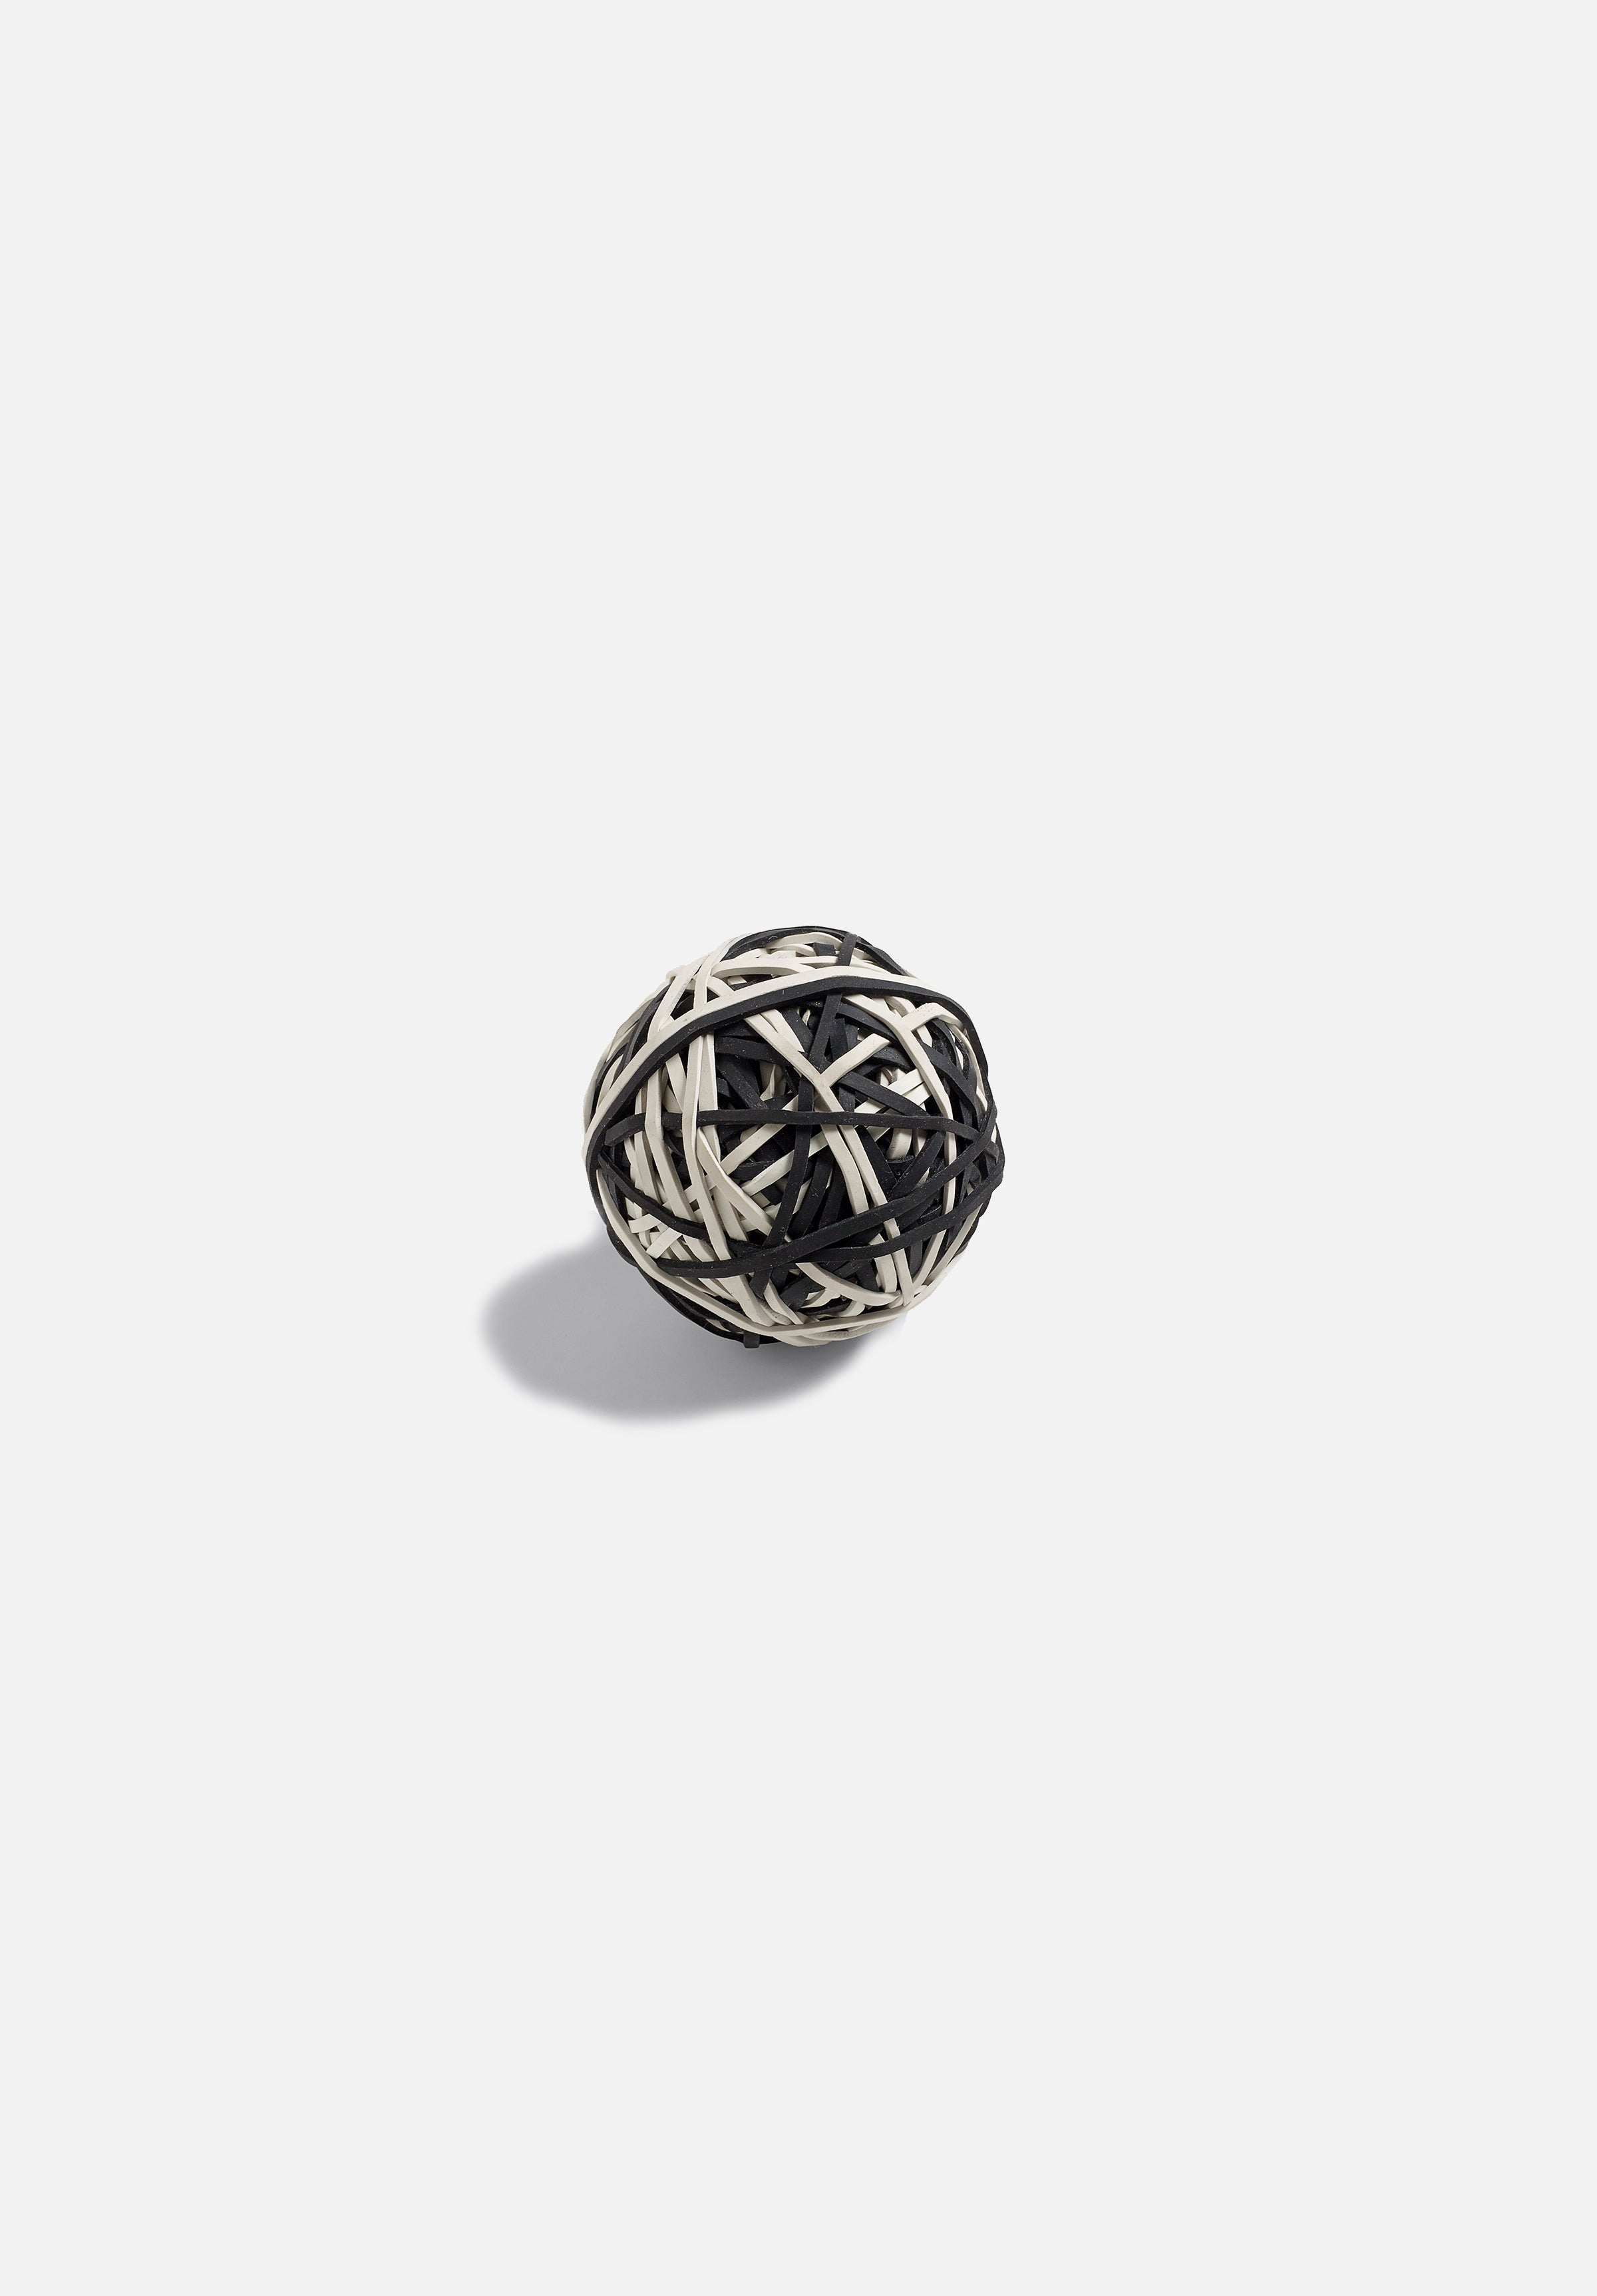 Elastic Ball-HAY-danish-interior-furniture-denmark-Average-design-toronto-canada